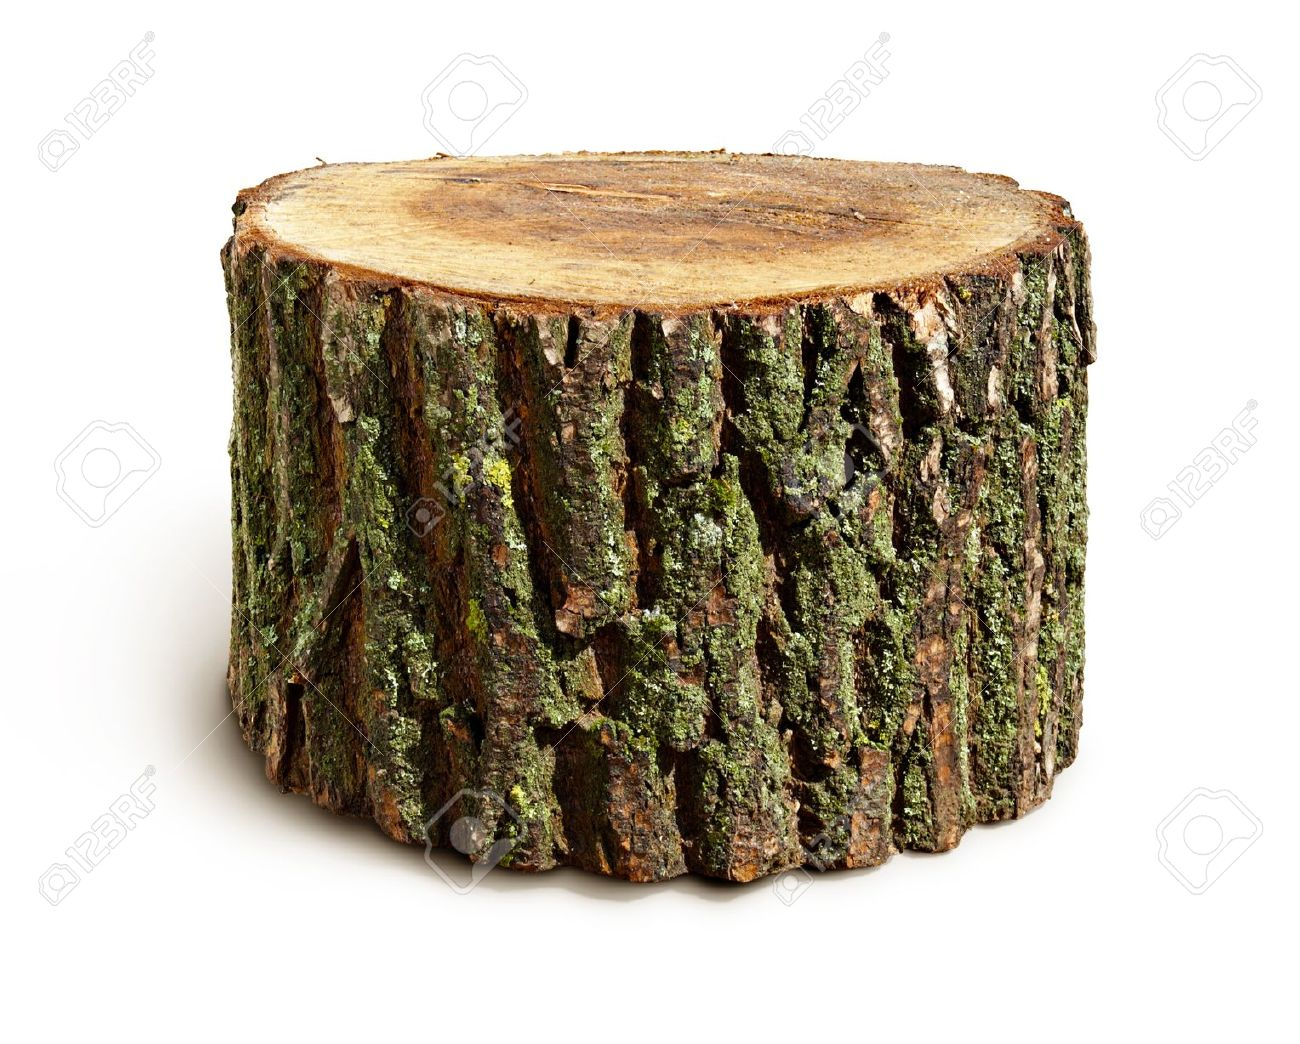 http://previews.123rf.com/images/missanzi/missanzi1205/missanzi120500004/13863974-Stump-isolated-on-a-white-background-Stock-Photo-tree-stump-oak.jpg